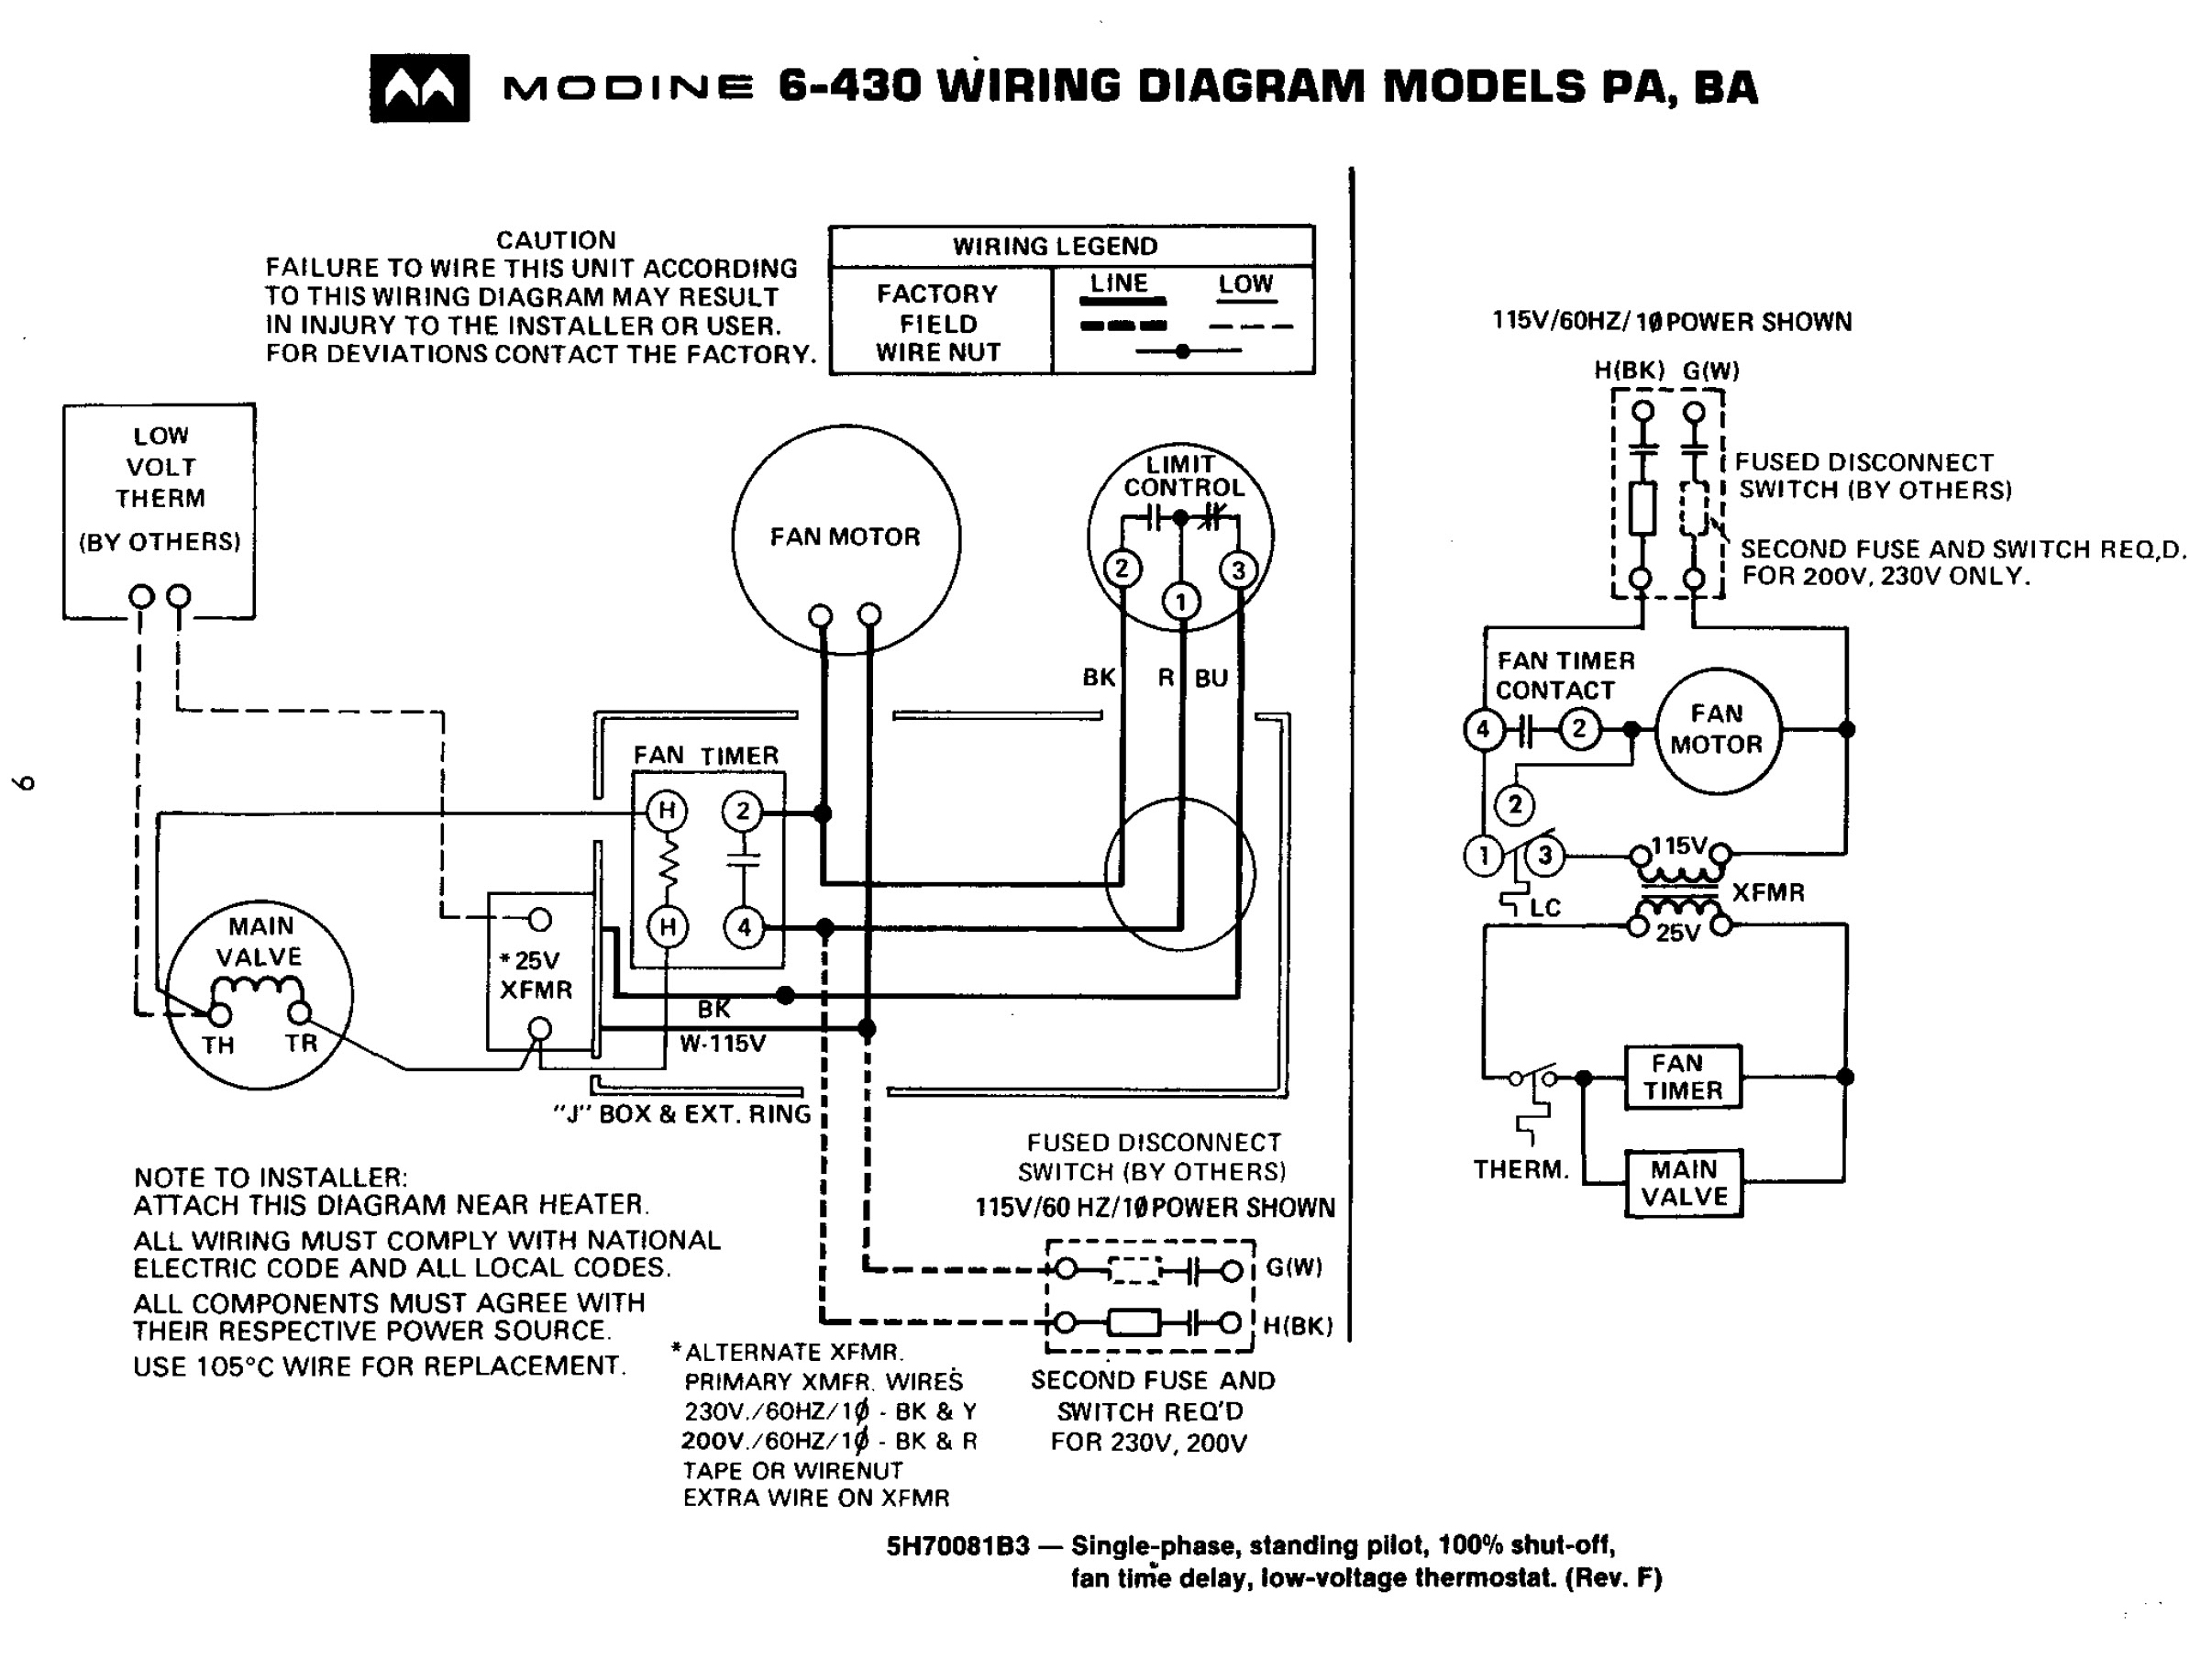 modine pd 50 wiring diagram - wiring diagram gas transport diagram #12